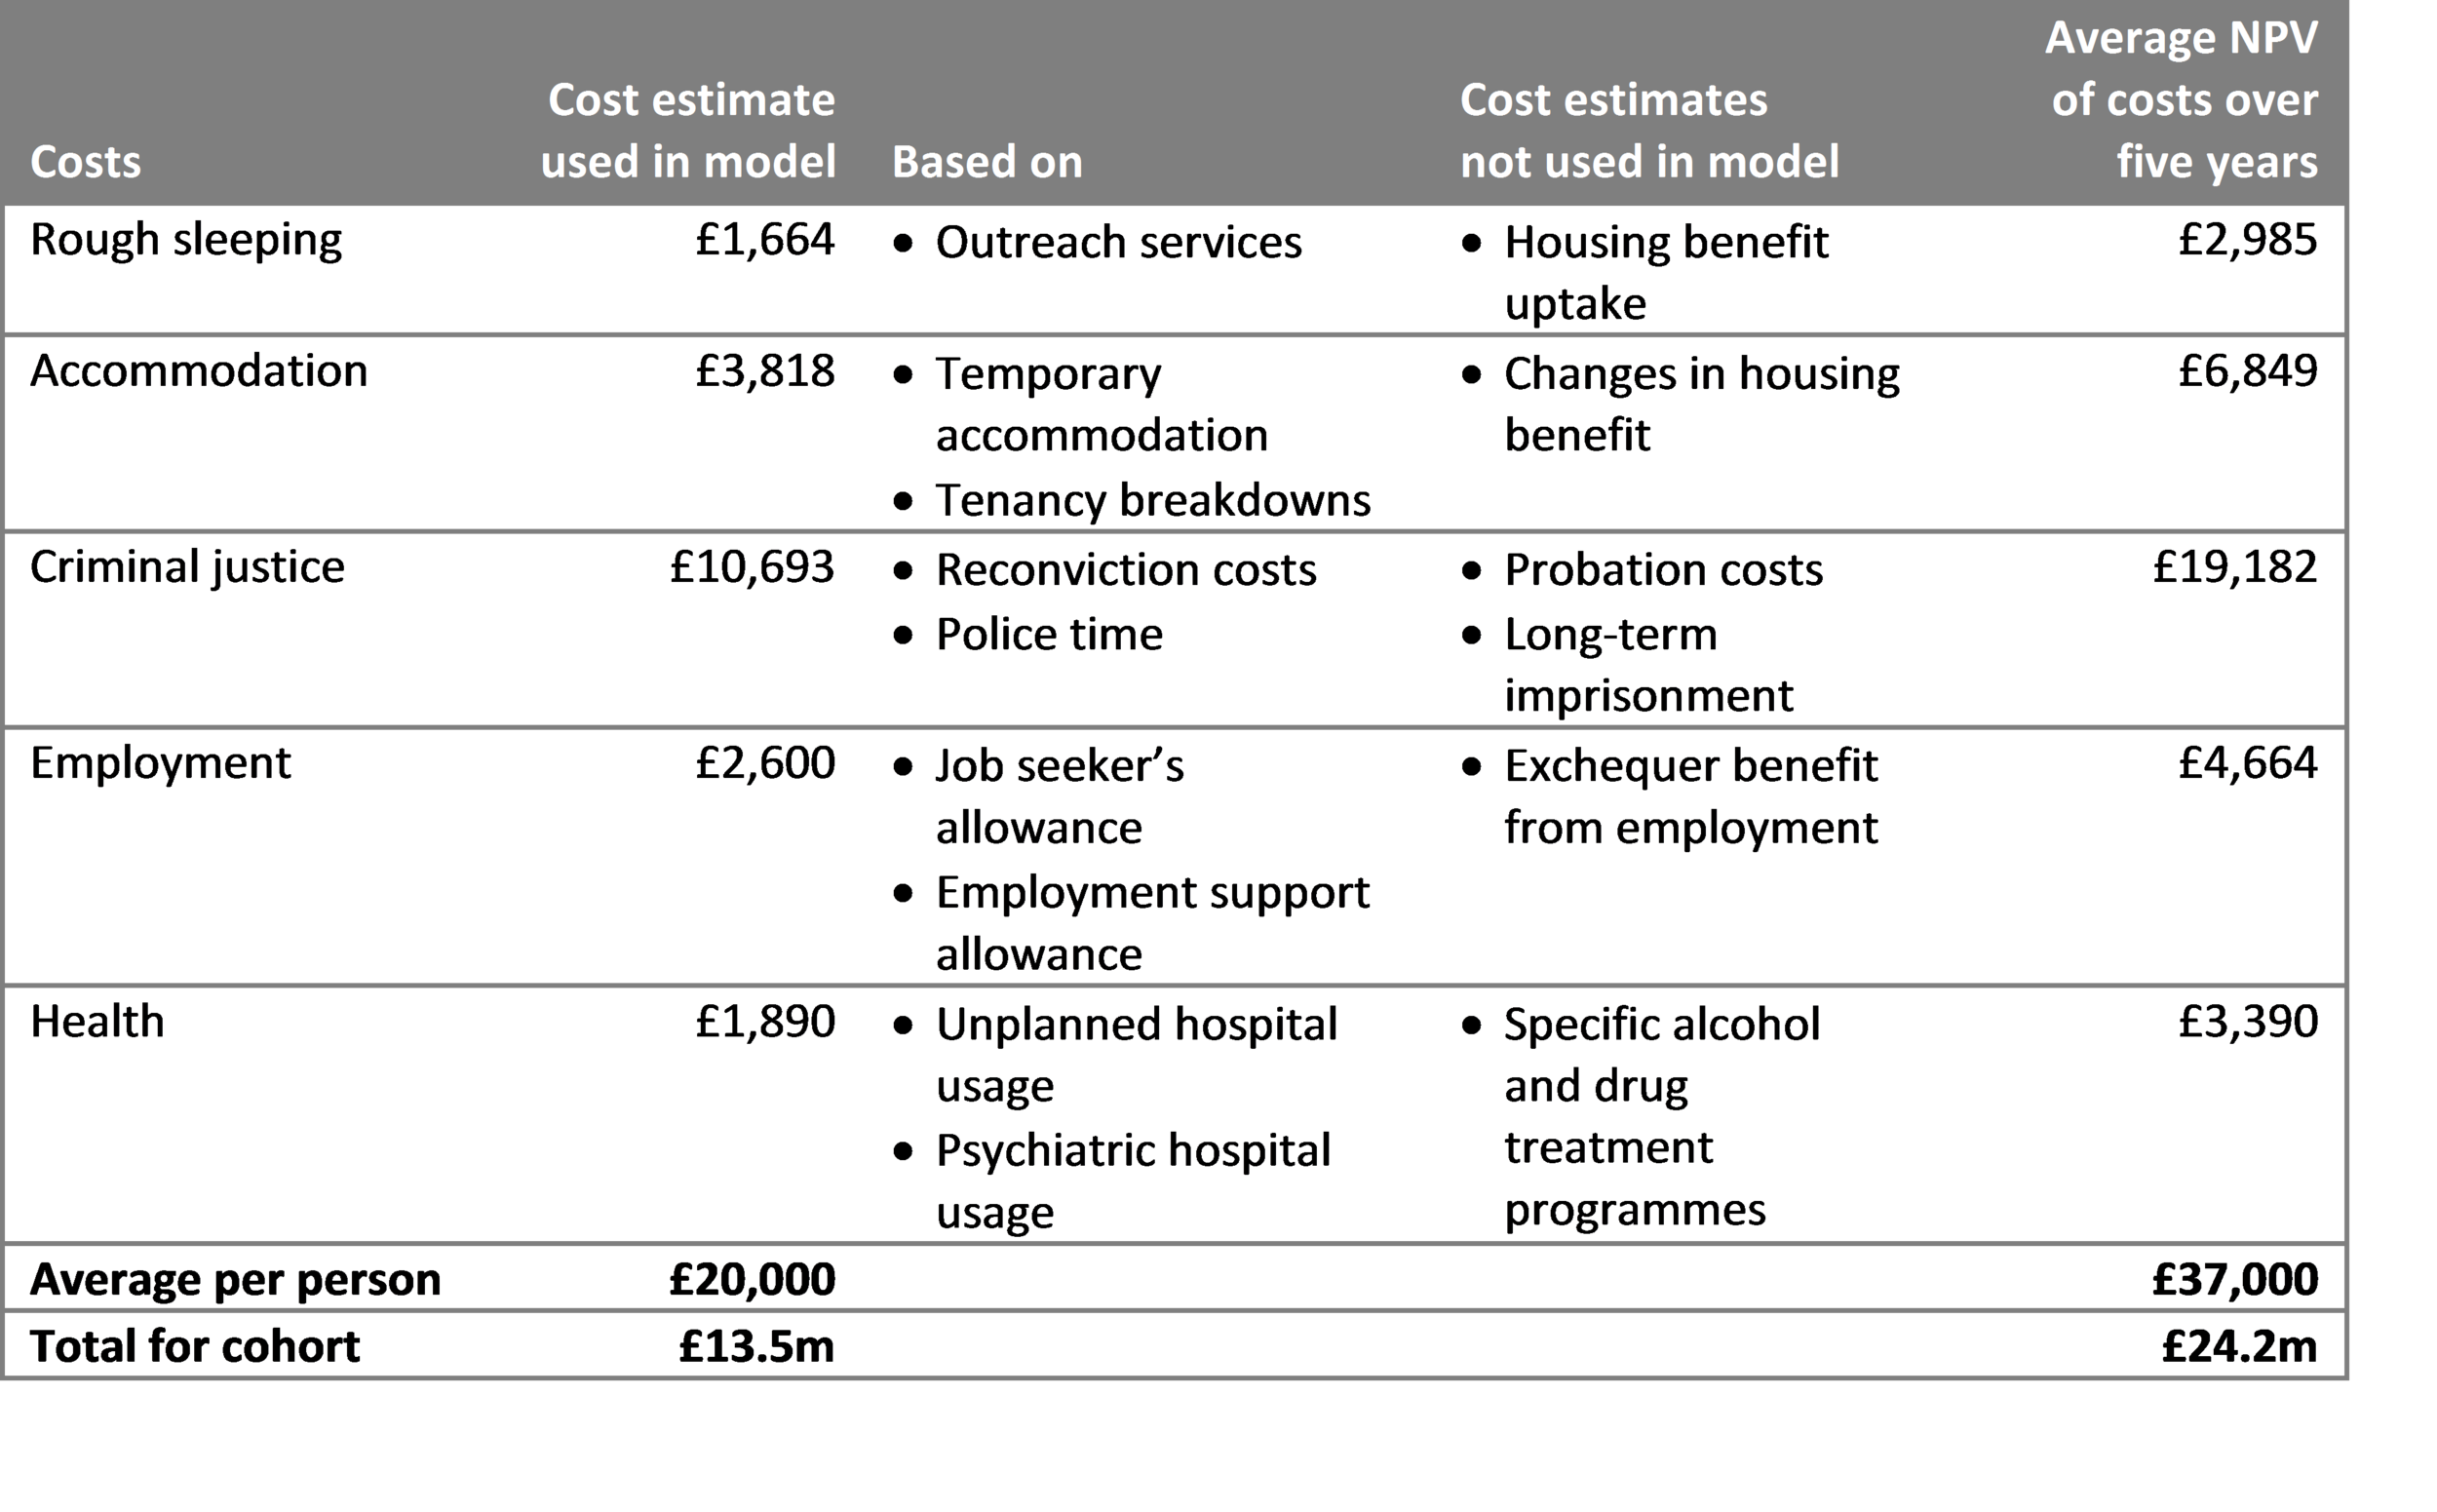 Costs per individual cohort member across proposed outcome areas  Sources:  Department for Communities and Local Government (2014) and Social Finance (2012, p. 30)